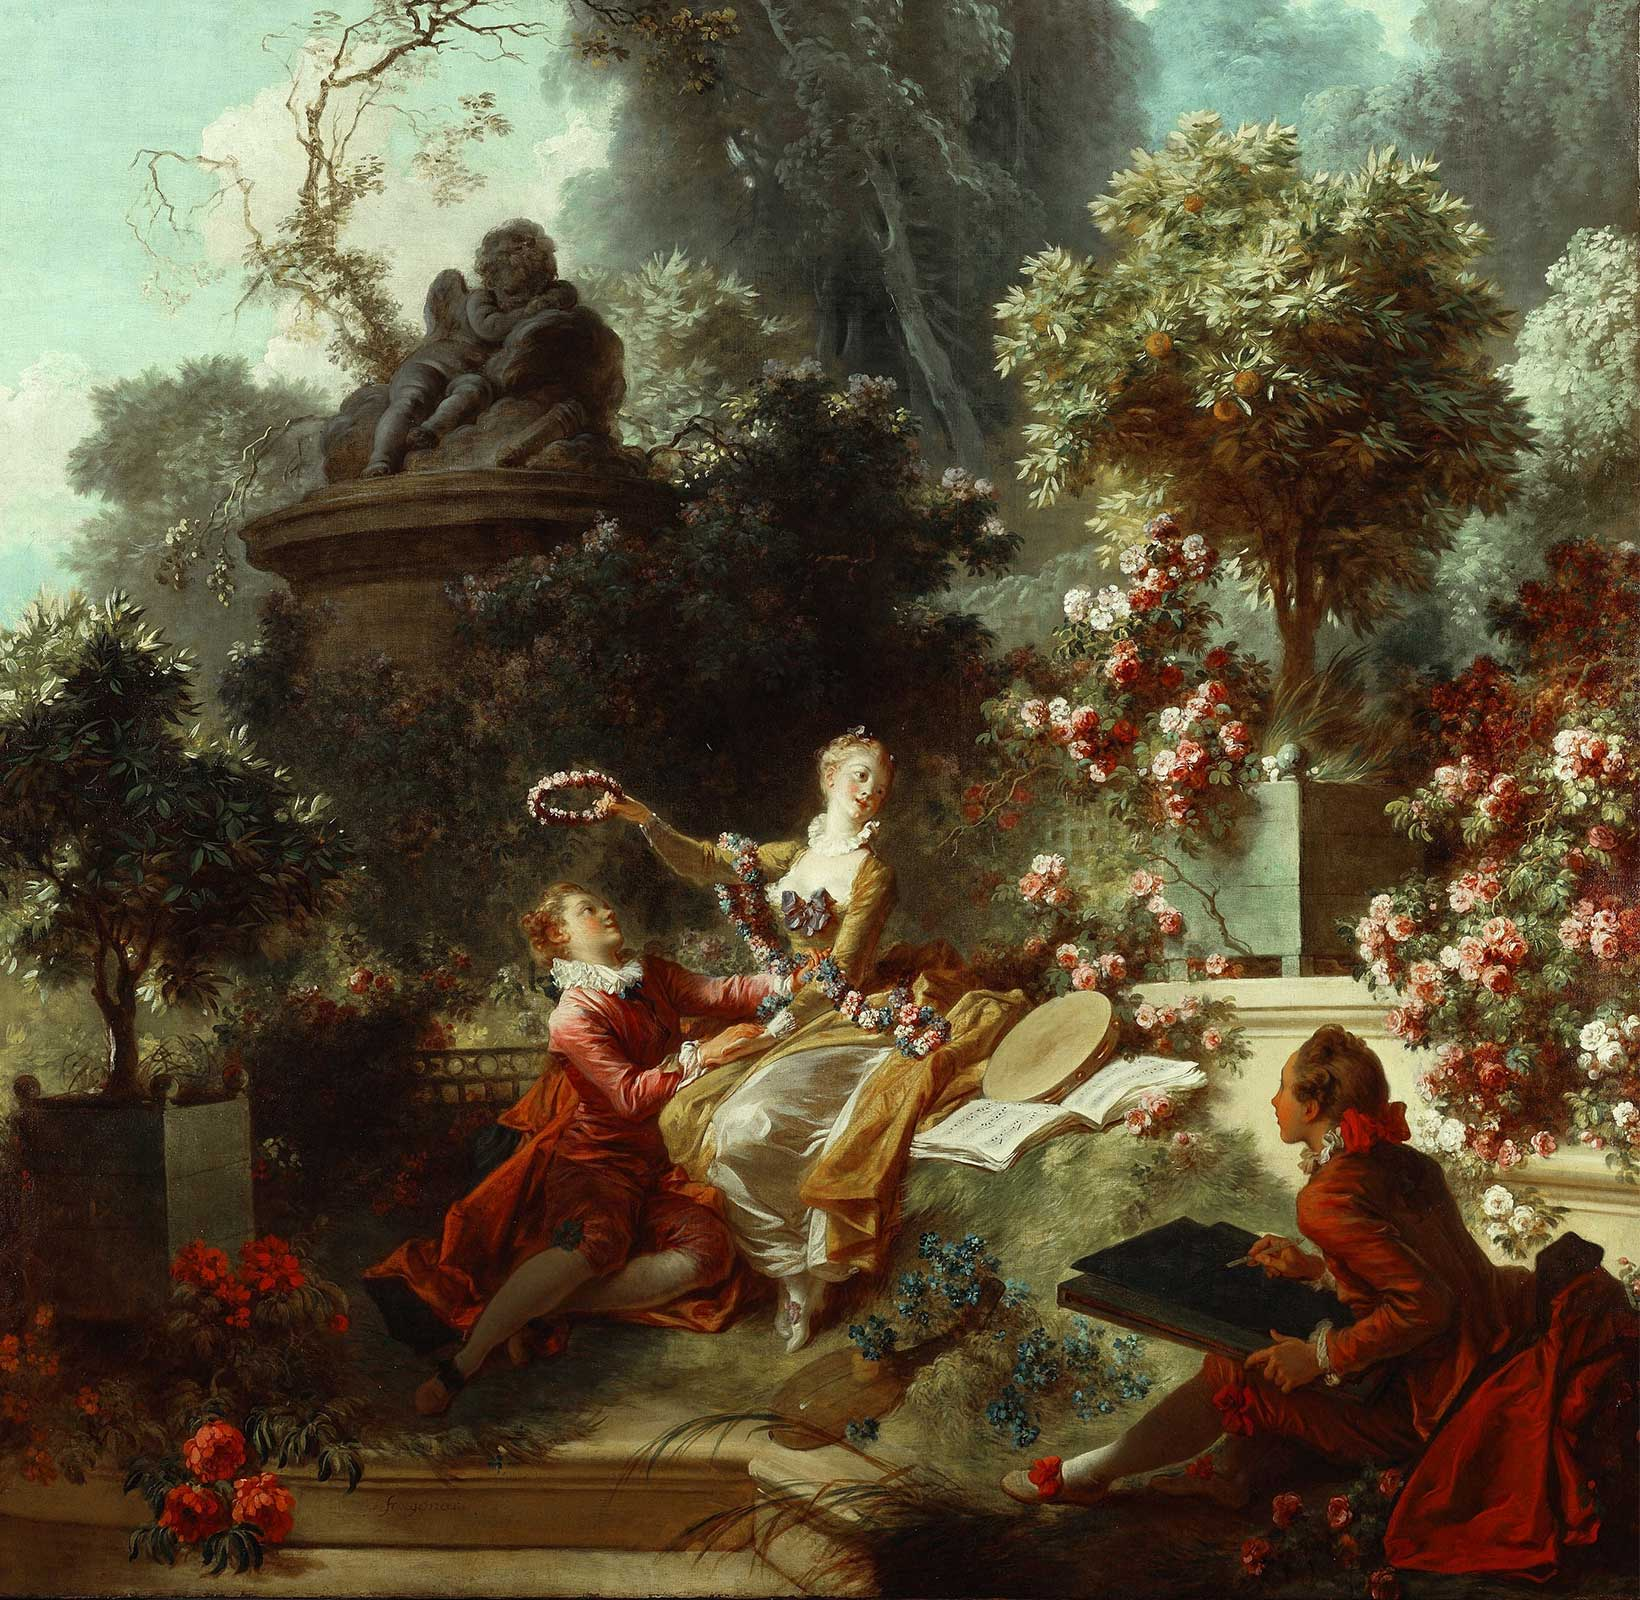 Jean Honoré Fragonard | The Progress of Love - The Lover Crowned (1771-73)